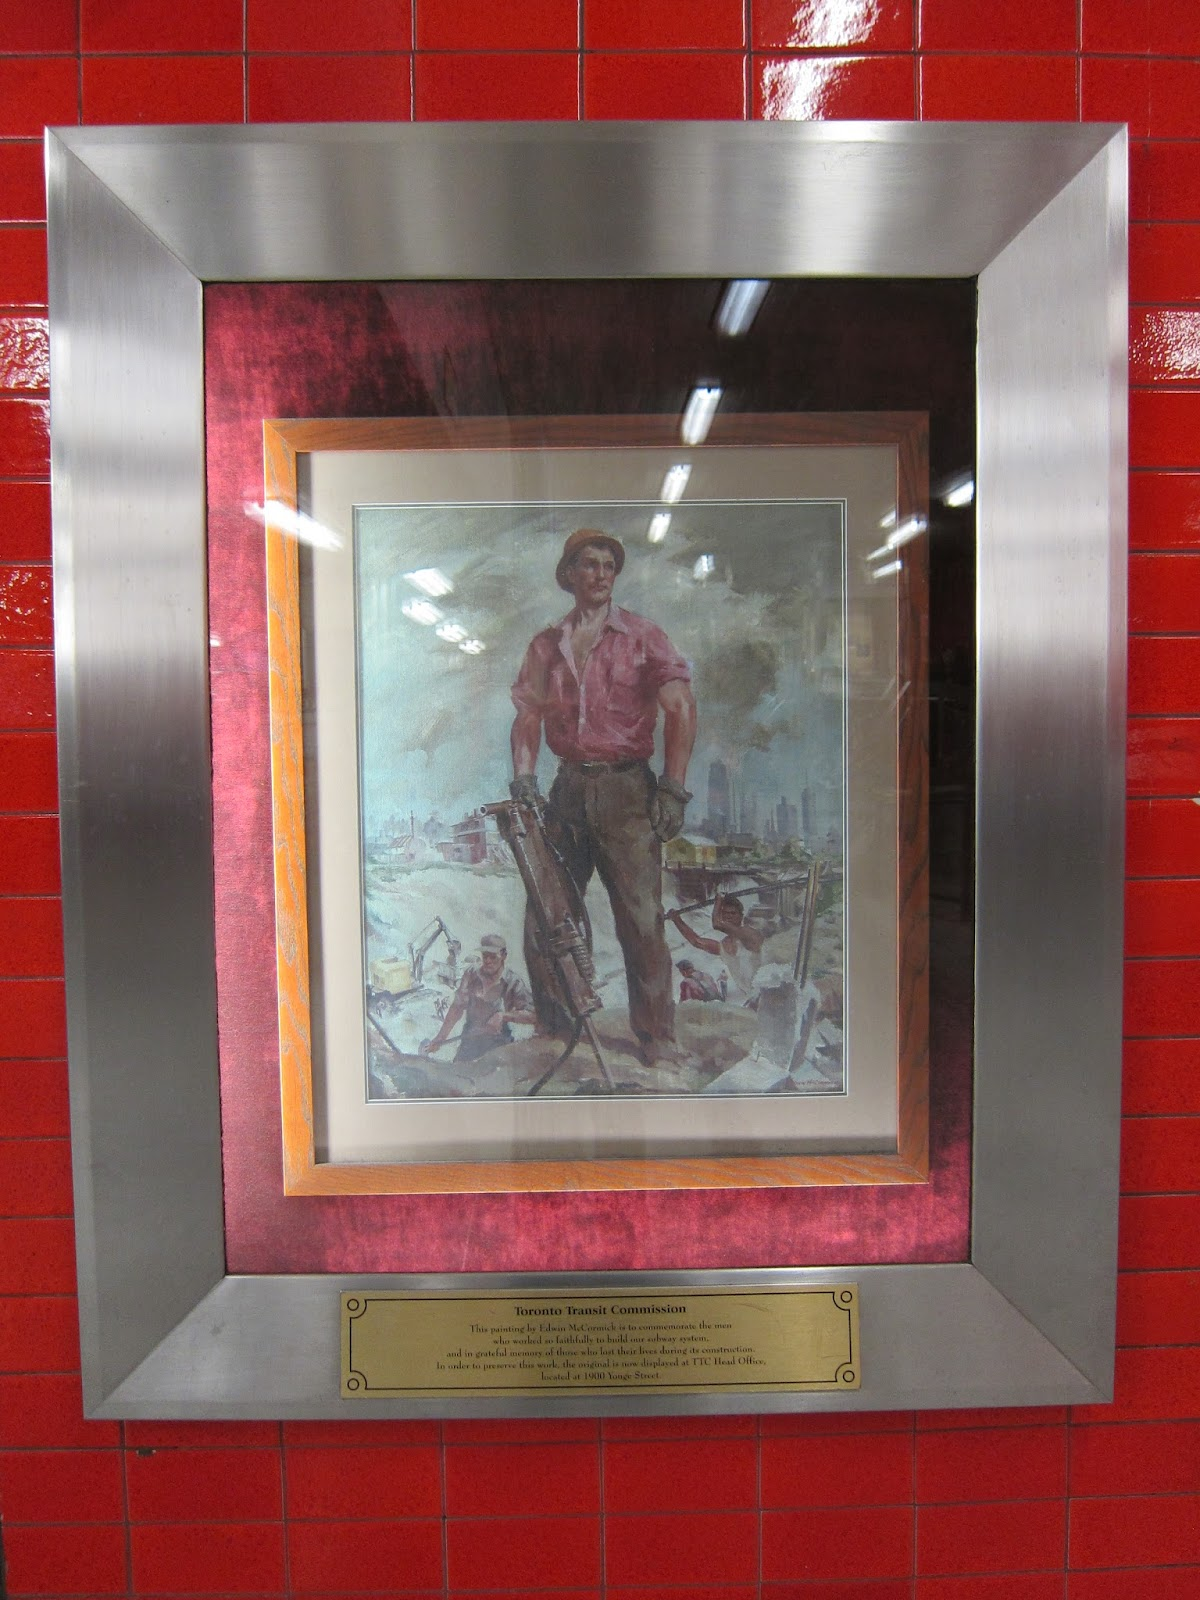 Edwin McCormick commemorative painting at Bloor subway station concourse